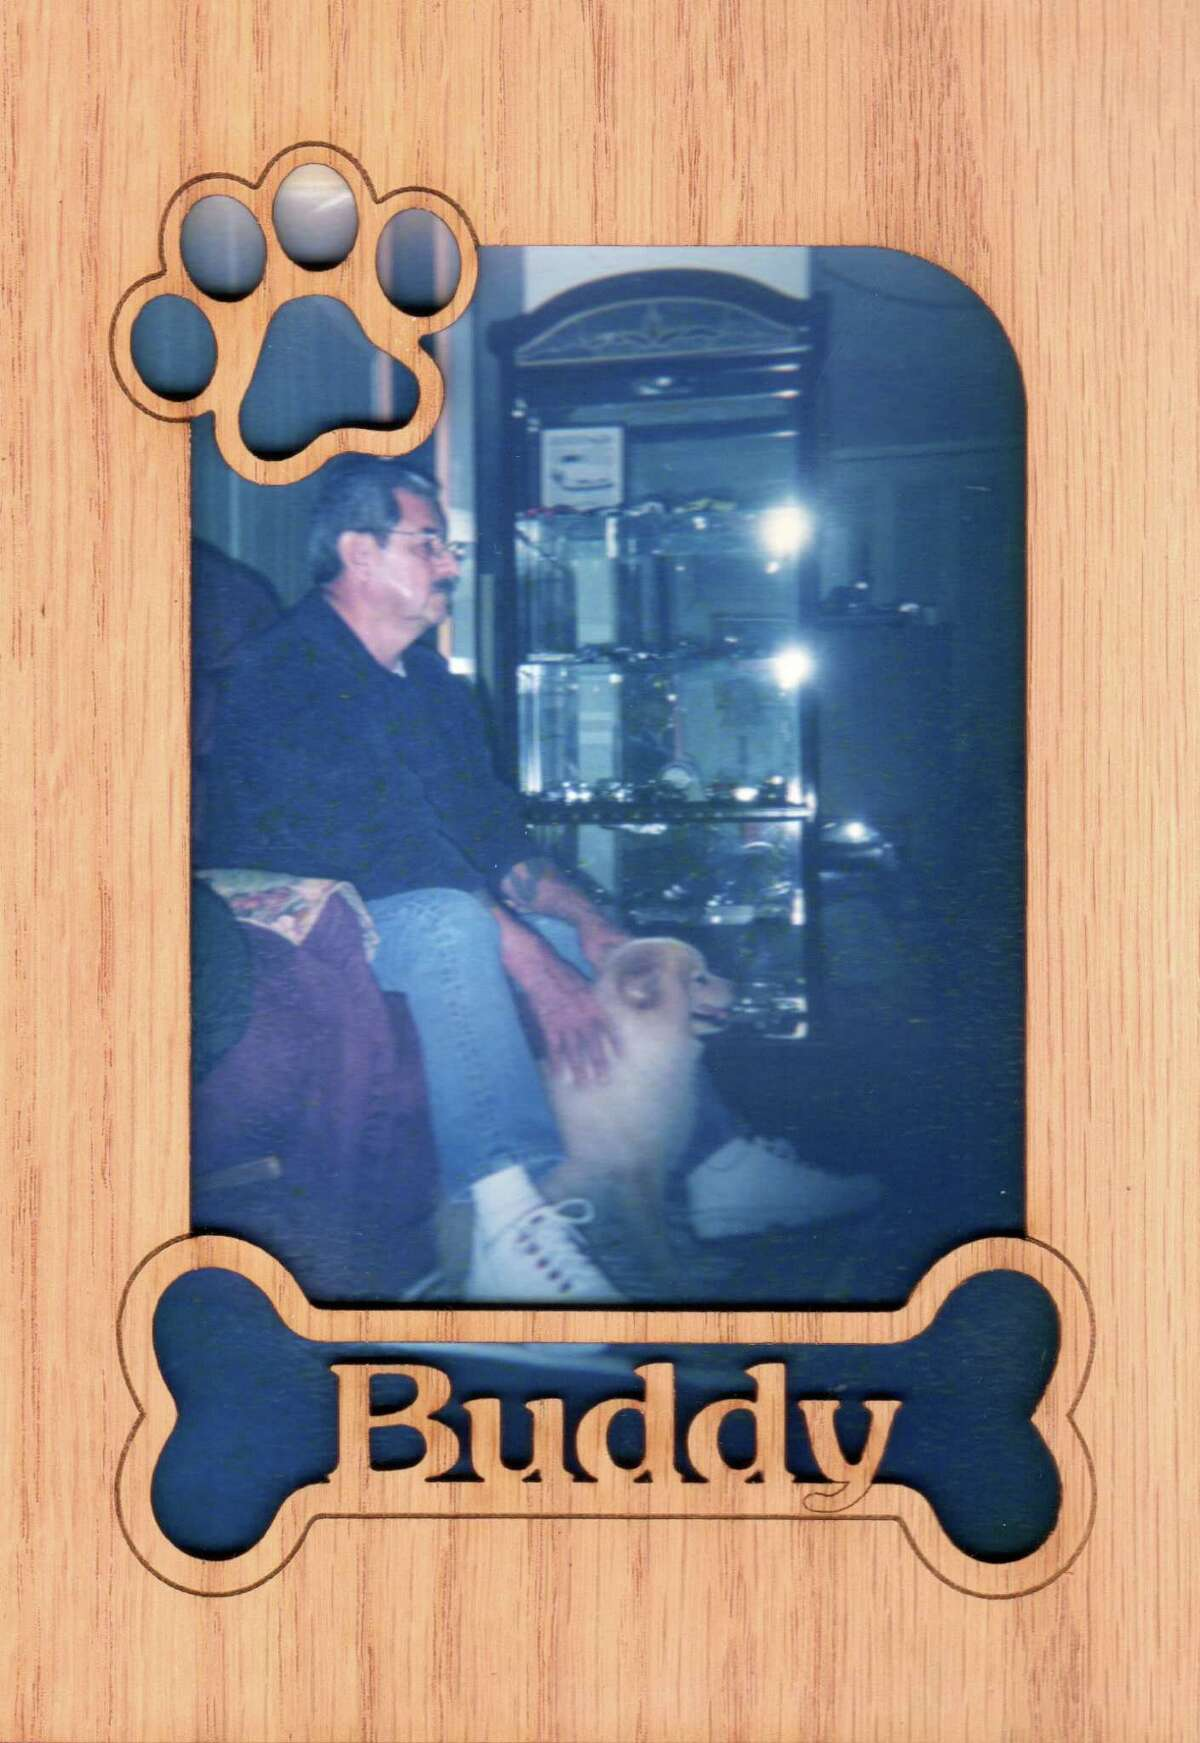 Manuel P. Munoz with his late dog Buddy.